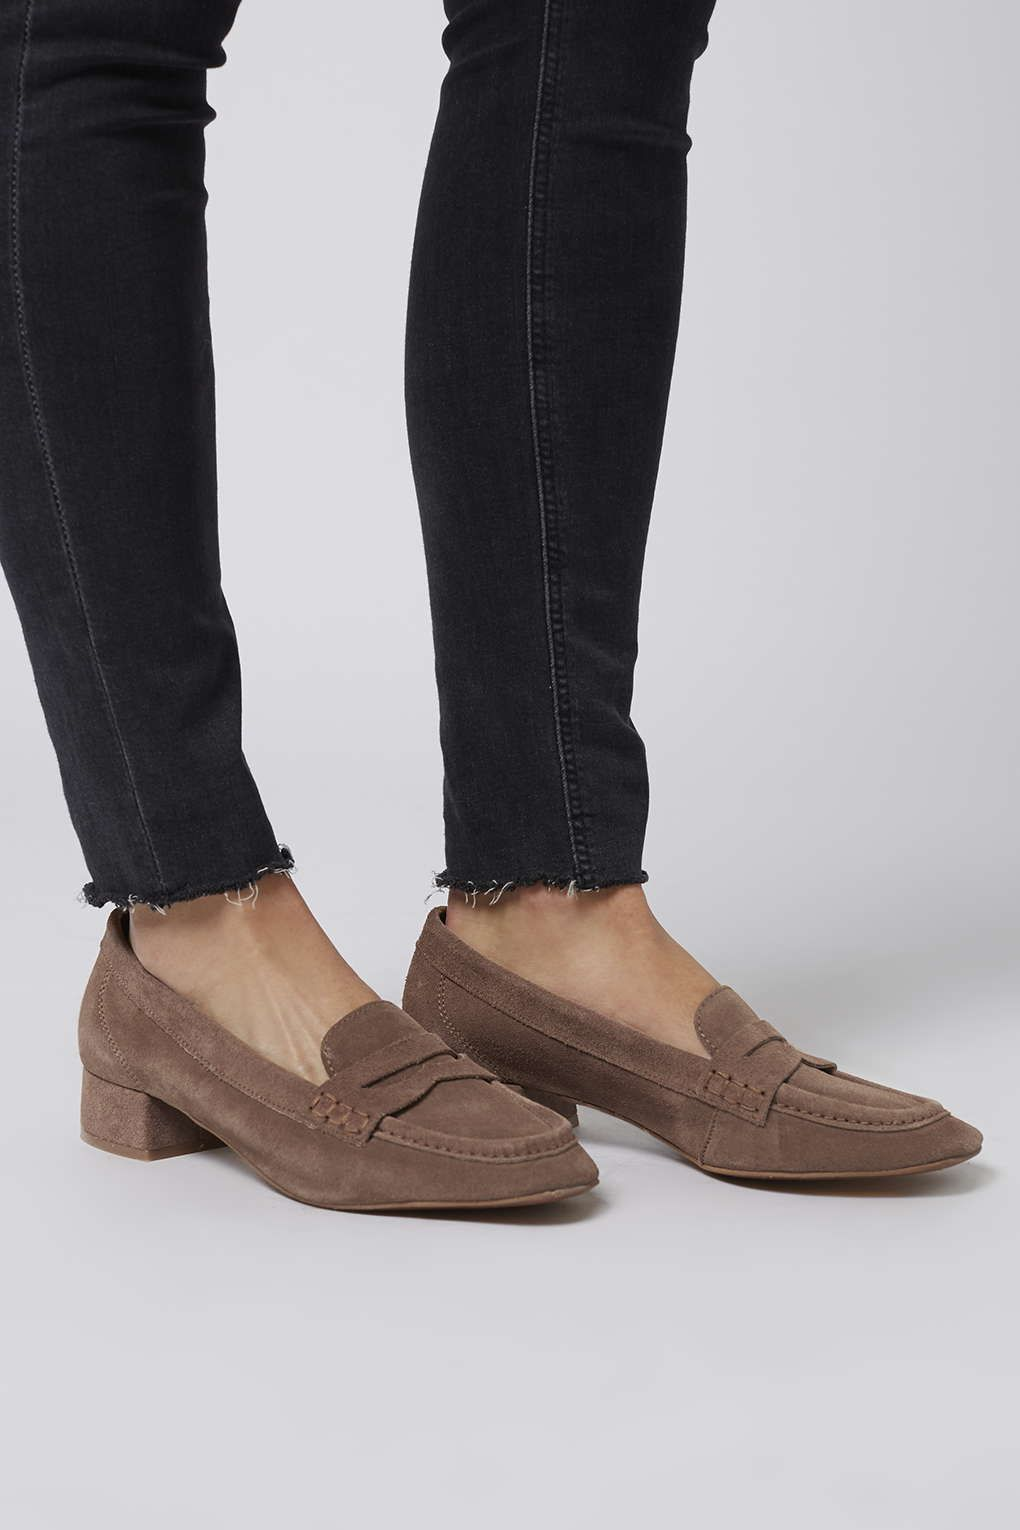 A totally androgynous style comes revamped with these leather suede  loafers. Crafted in a pretty blue, we love the easy style and versatile  block heel.